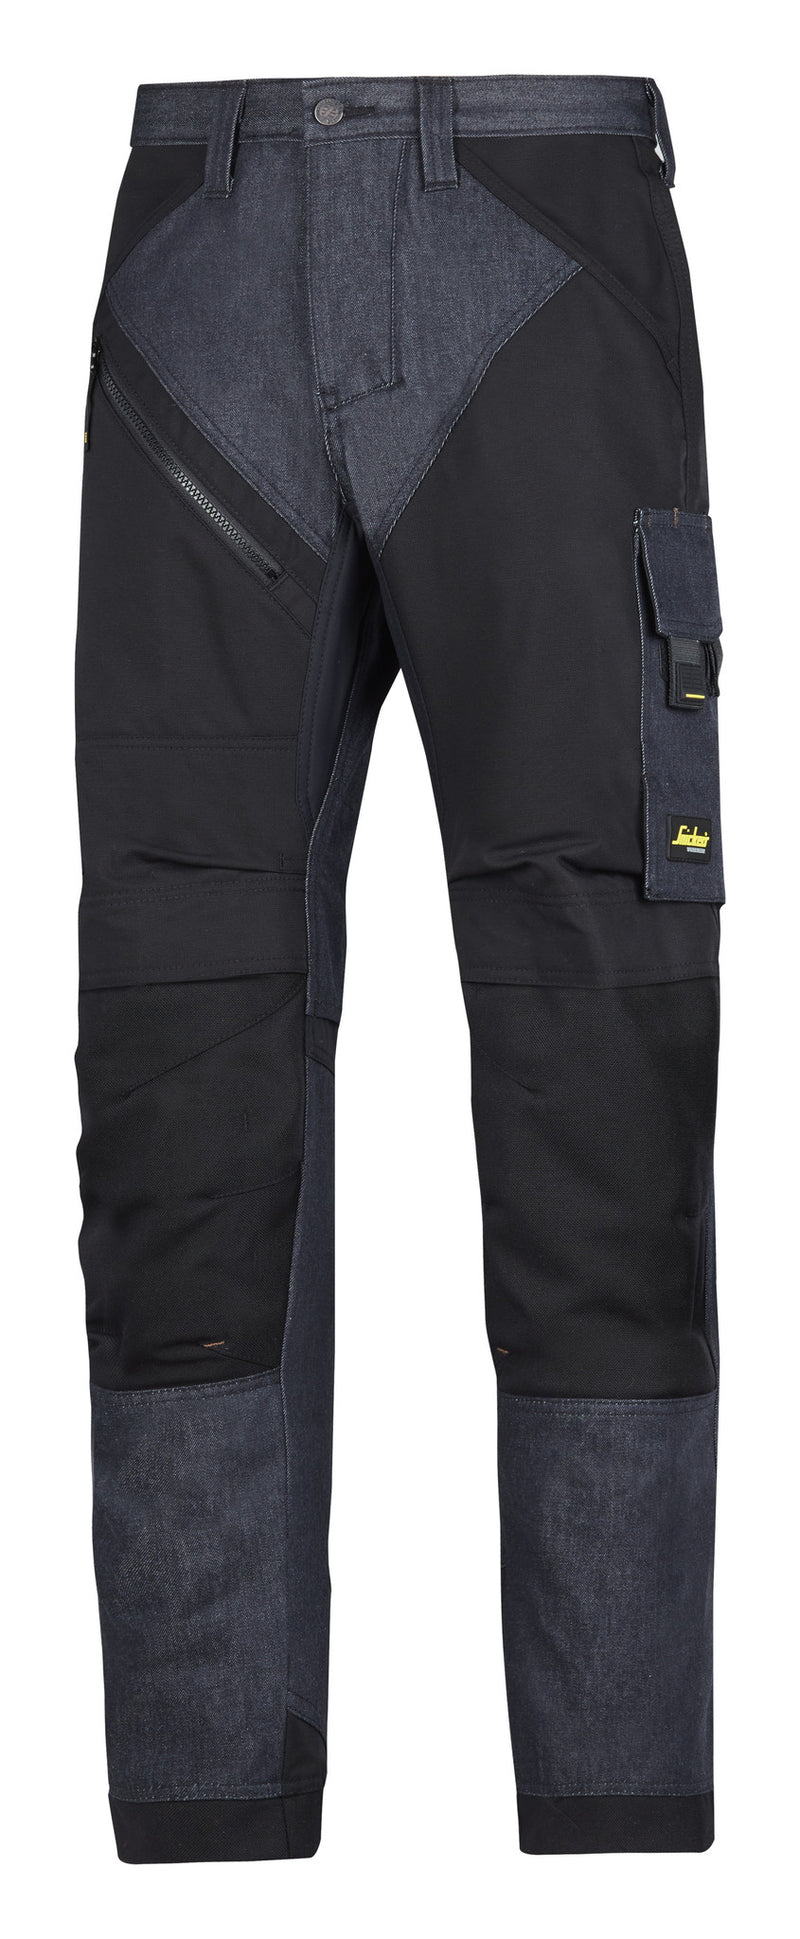 Snickers 6305 RuffWork Denim werkbroek - NEW - - Snickers Werkkledij